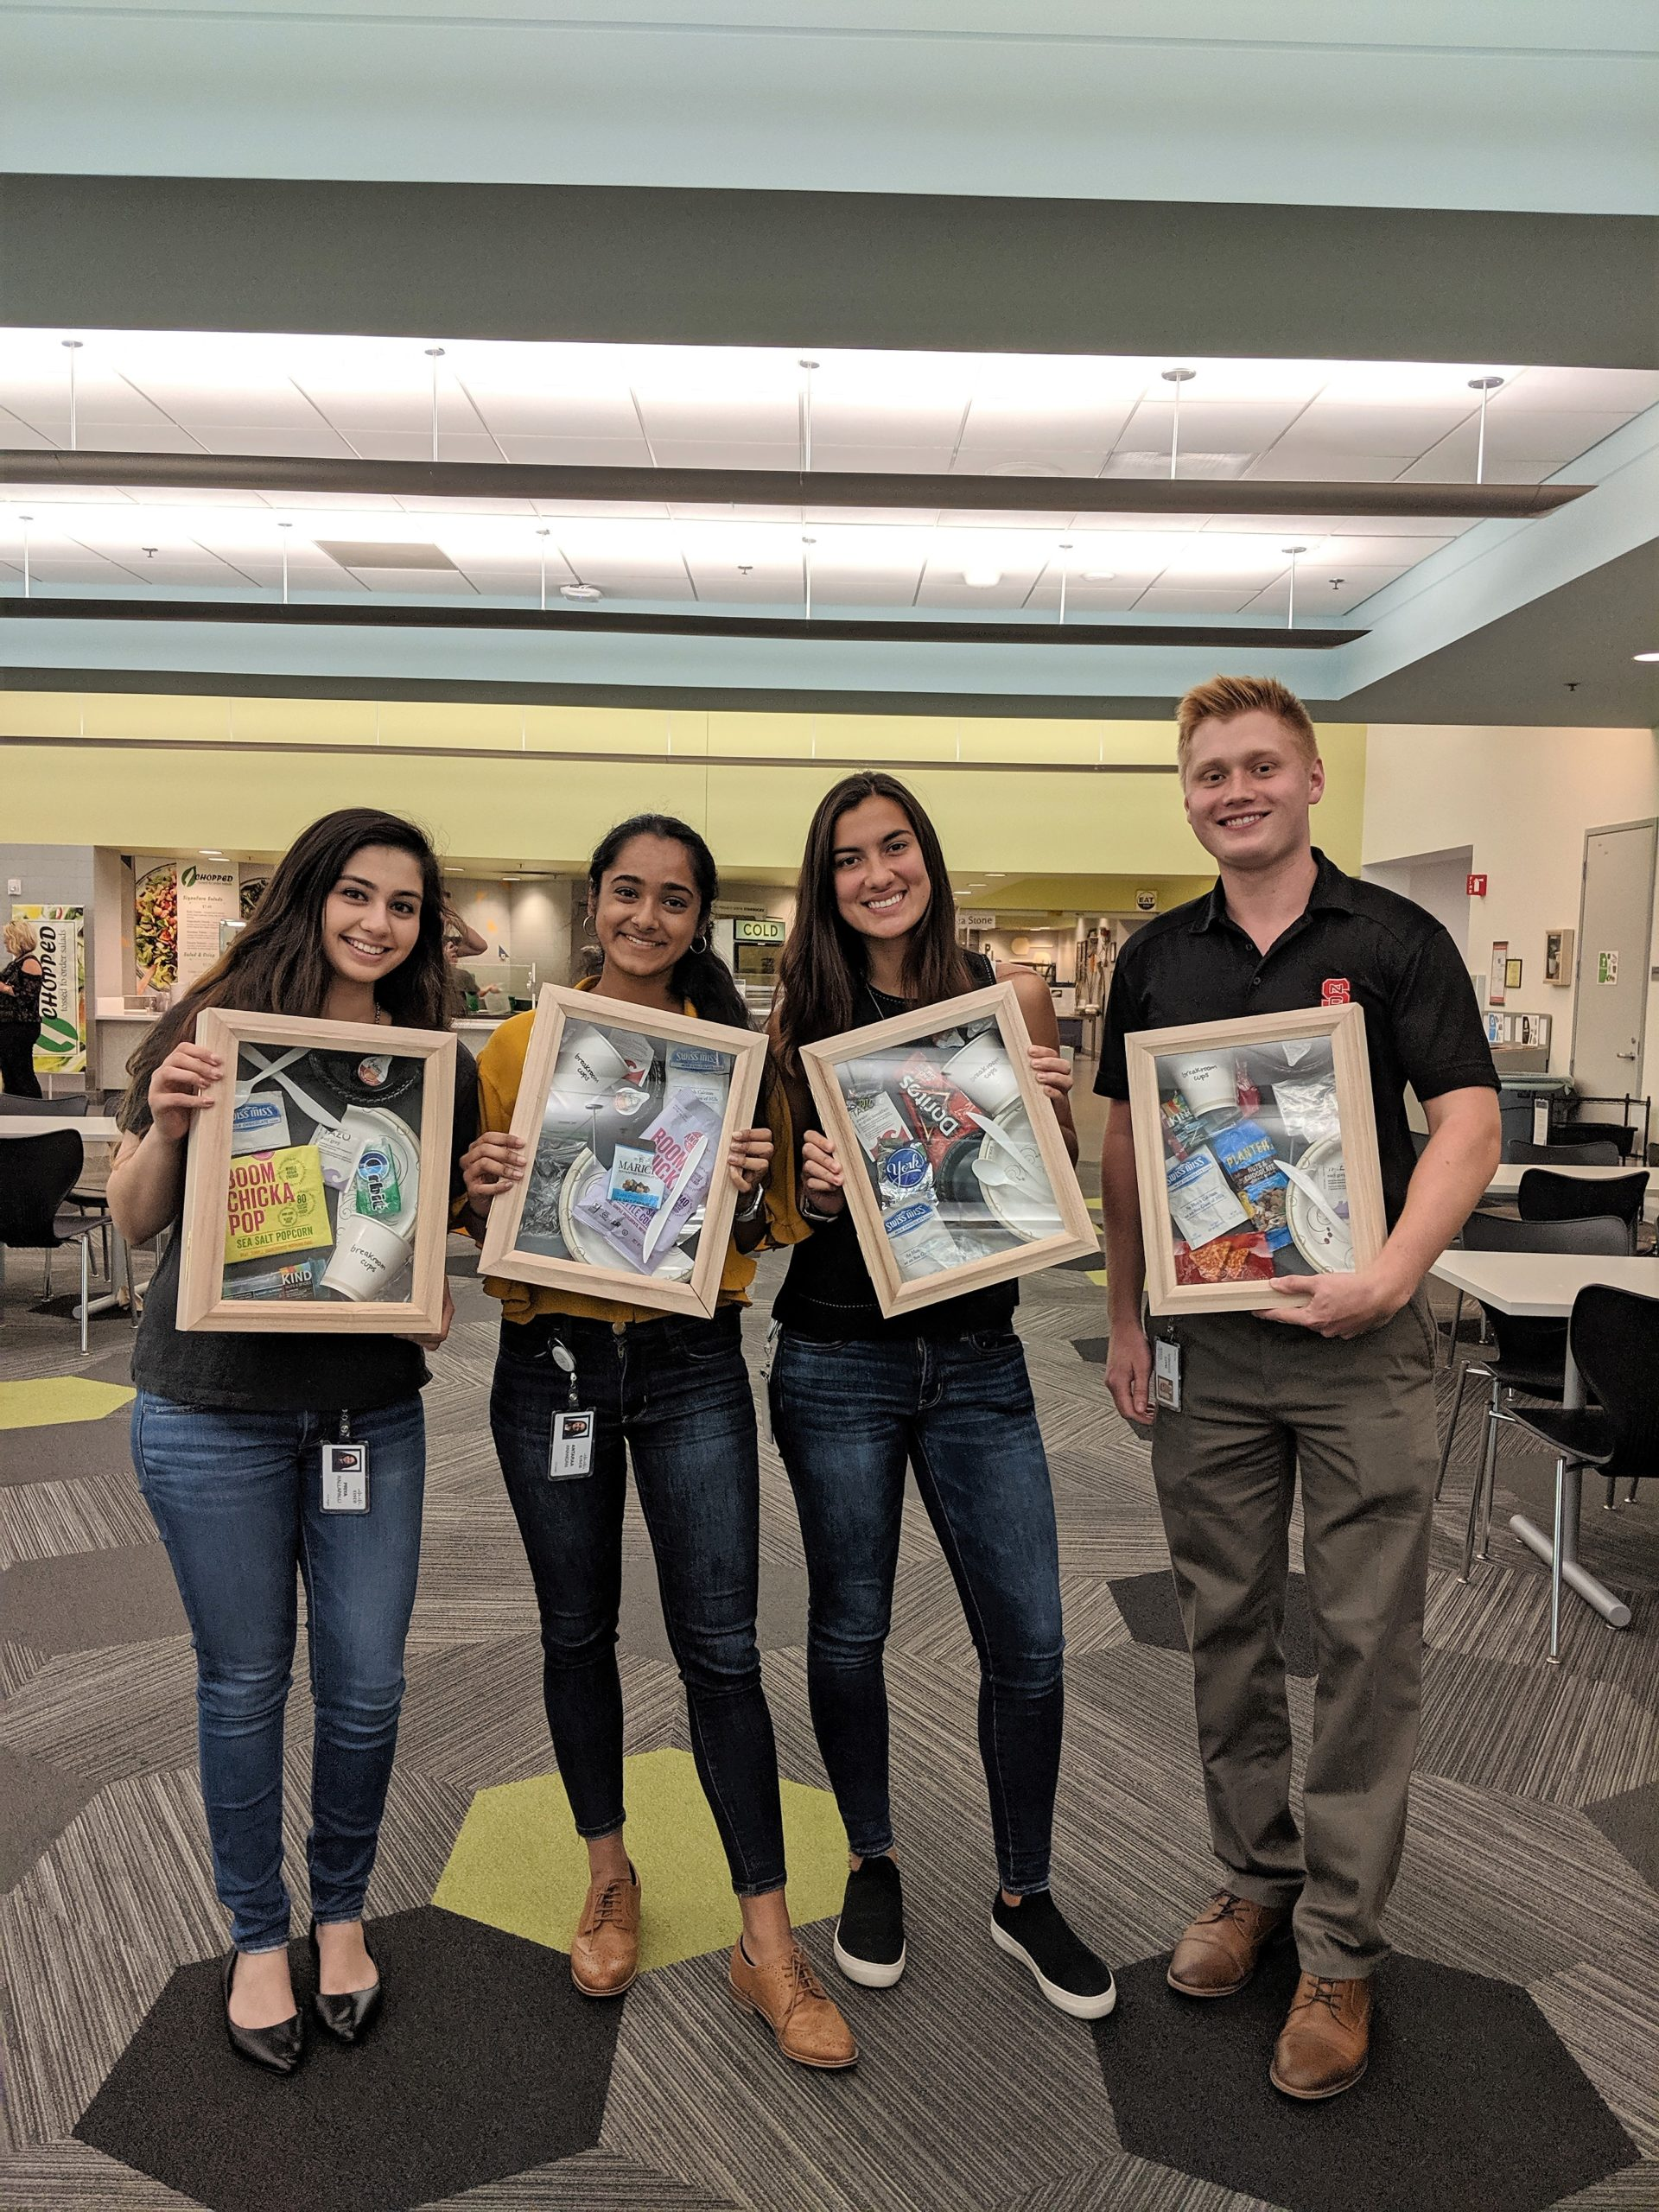 Interns in RTP help put together shadowboxes to show employees how to correctly sort waste